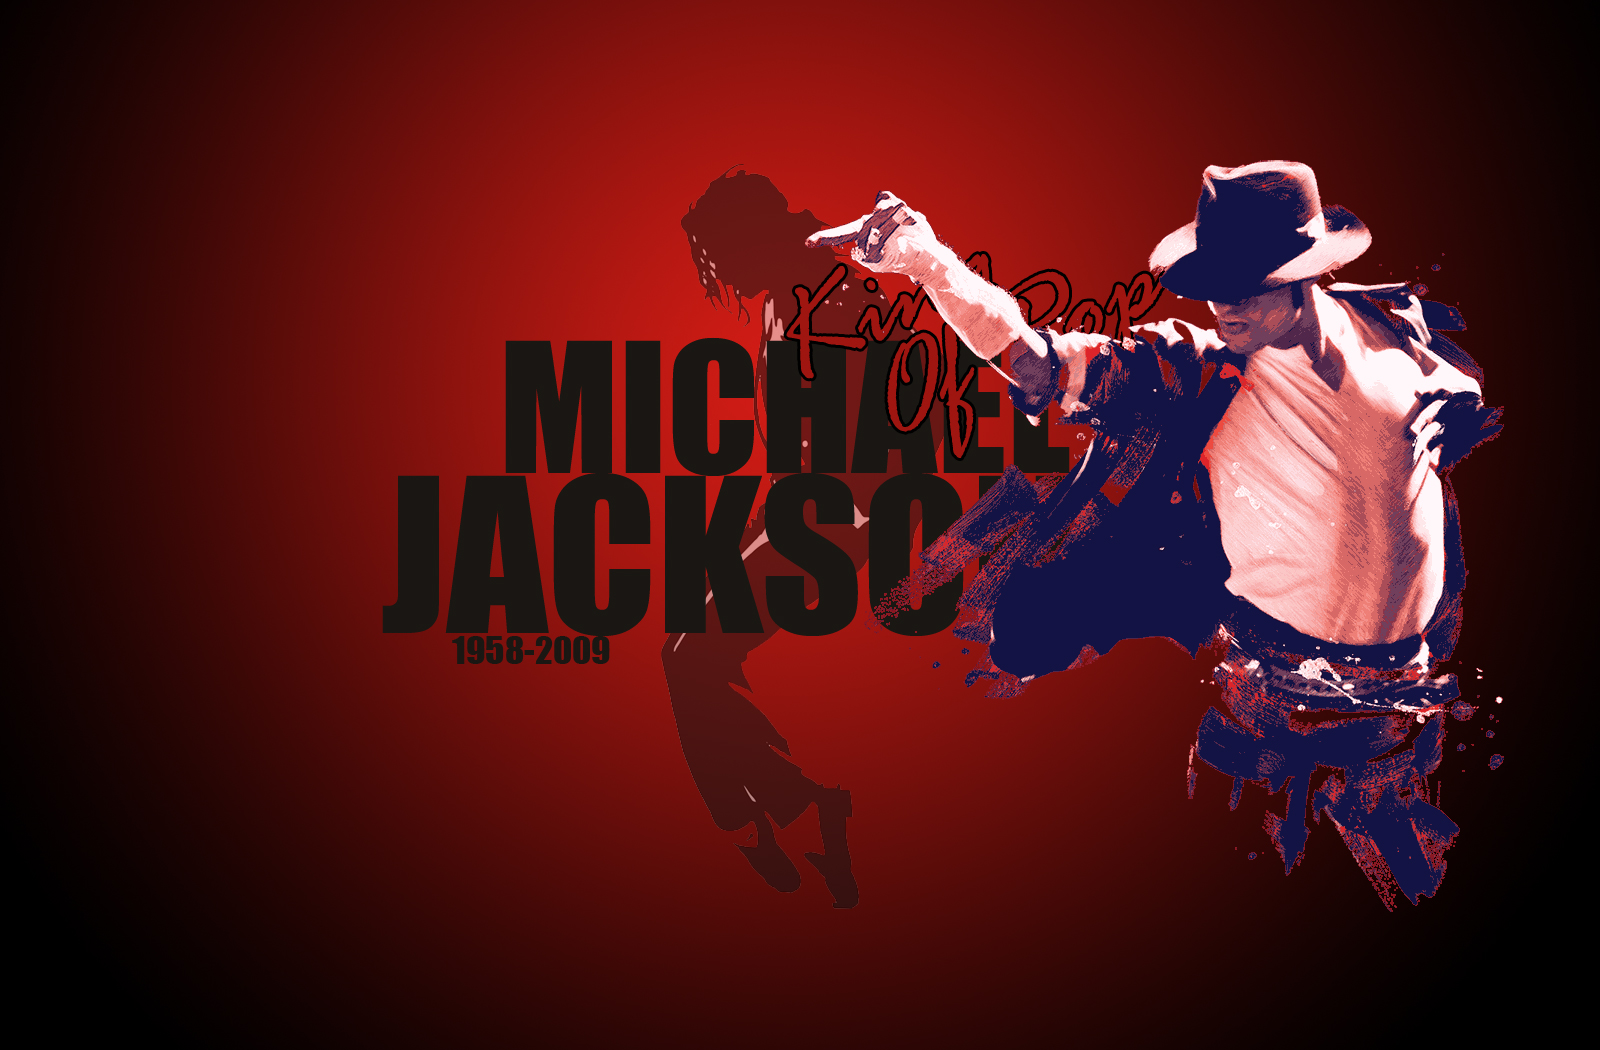 michael jackson images wallpapers - photo #18